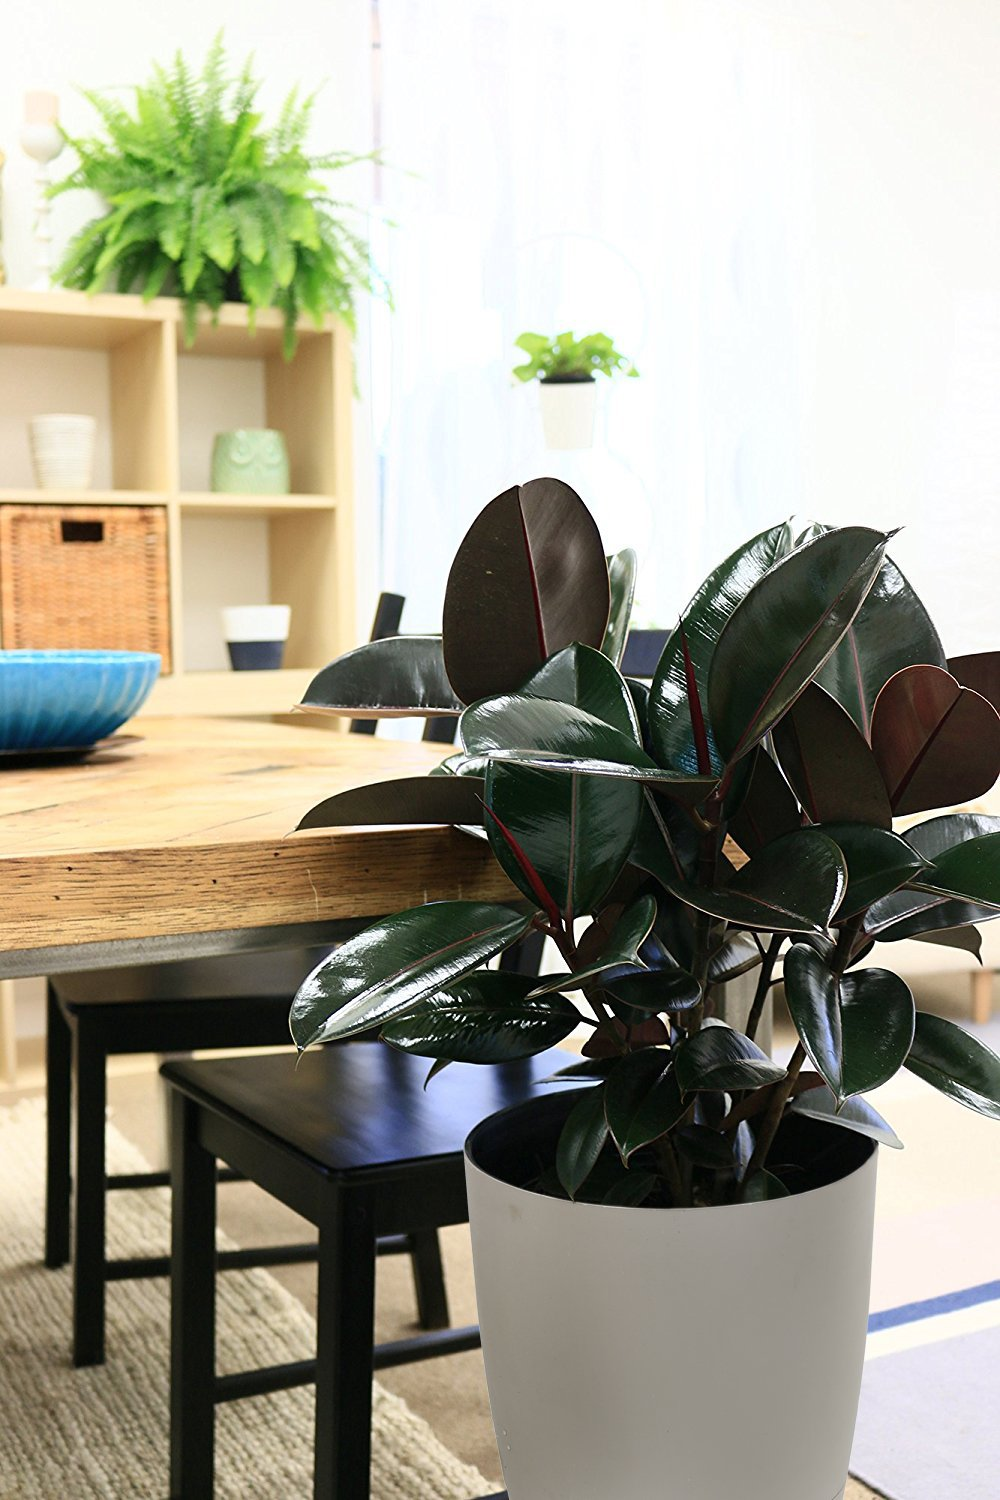 Costa Farms Burgundy Rubber, Ficus elastica, Live Indoor Plant, 2 to 3-Feet Tall, Ships with Décor Planter, Fresh From Our Farm, Excellent Gift or Home Décor by Costa Farms (Image #3)